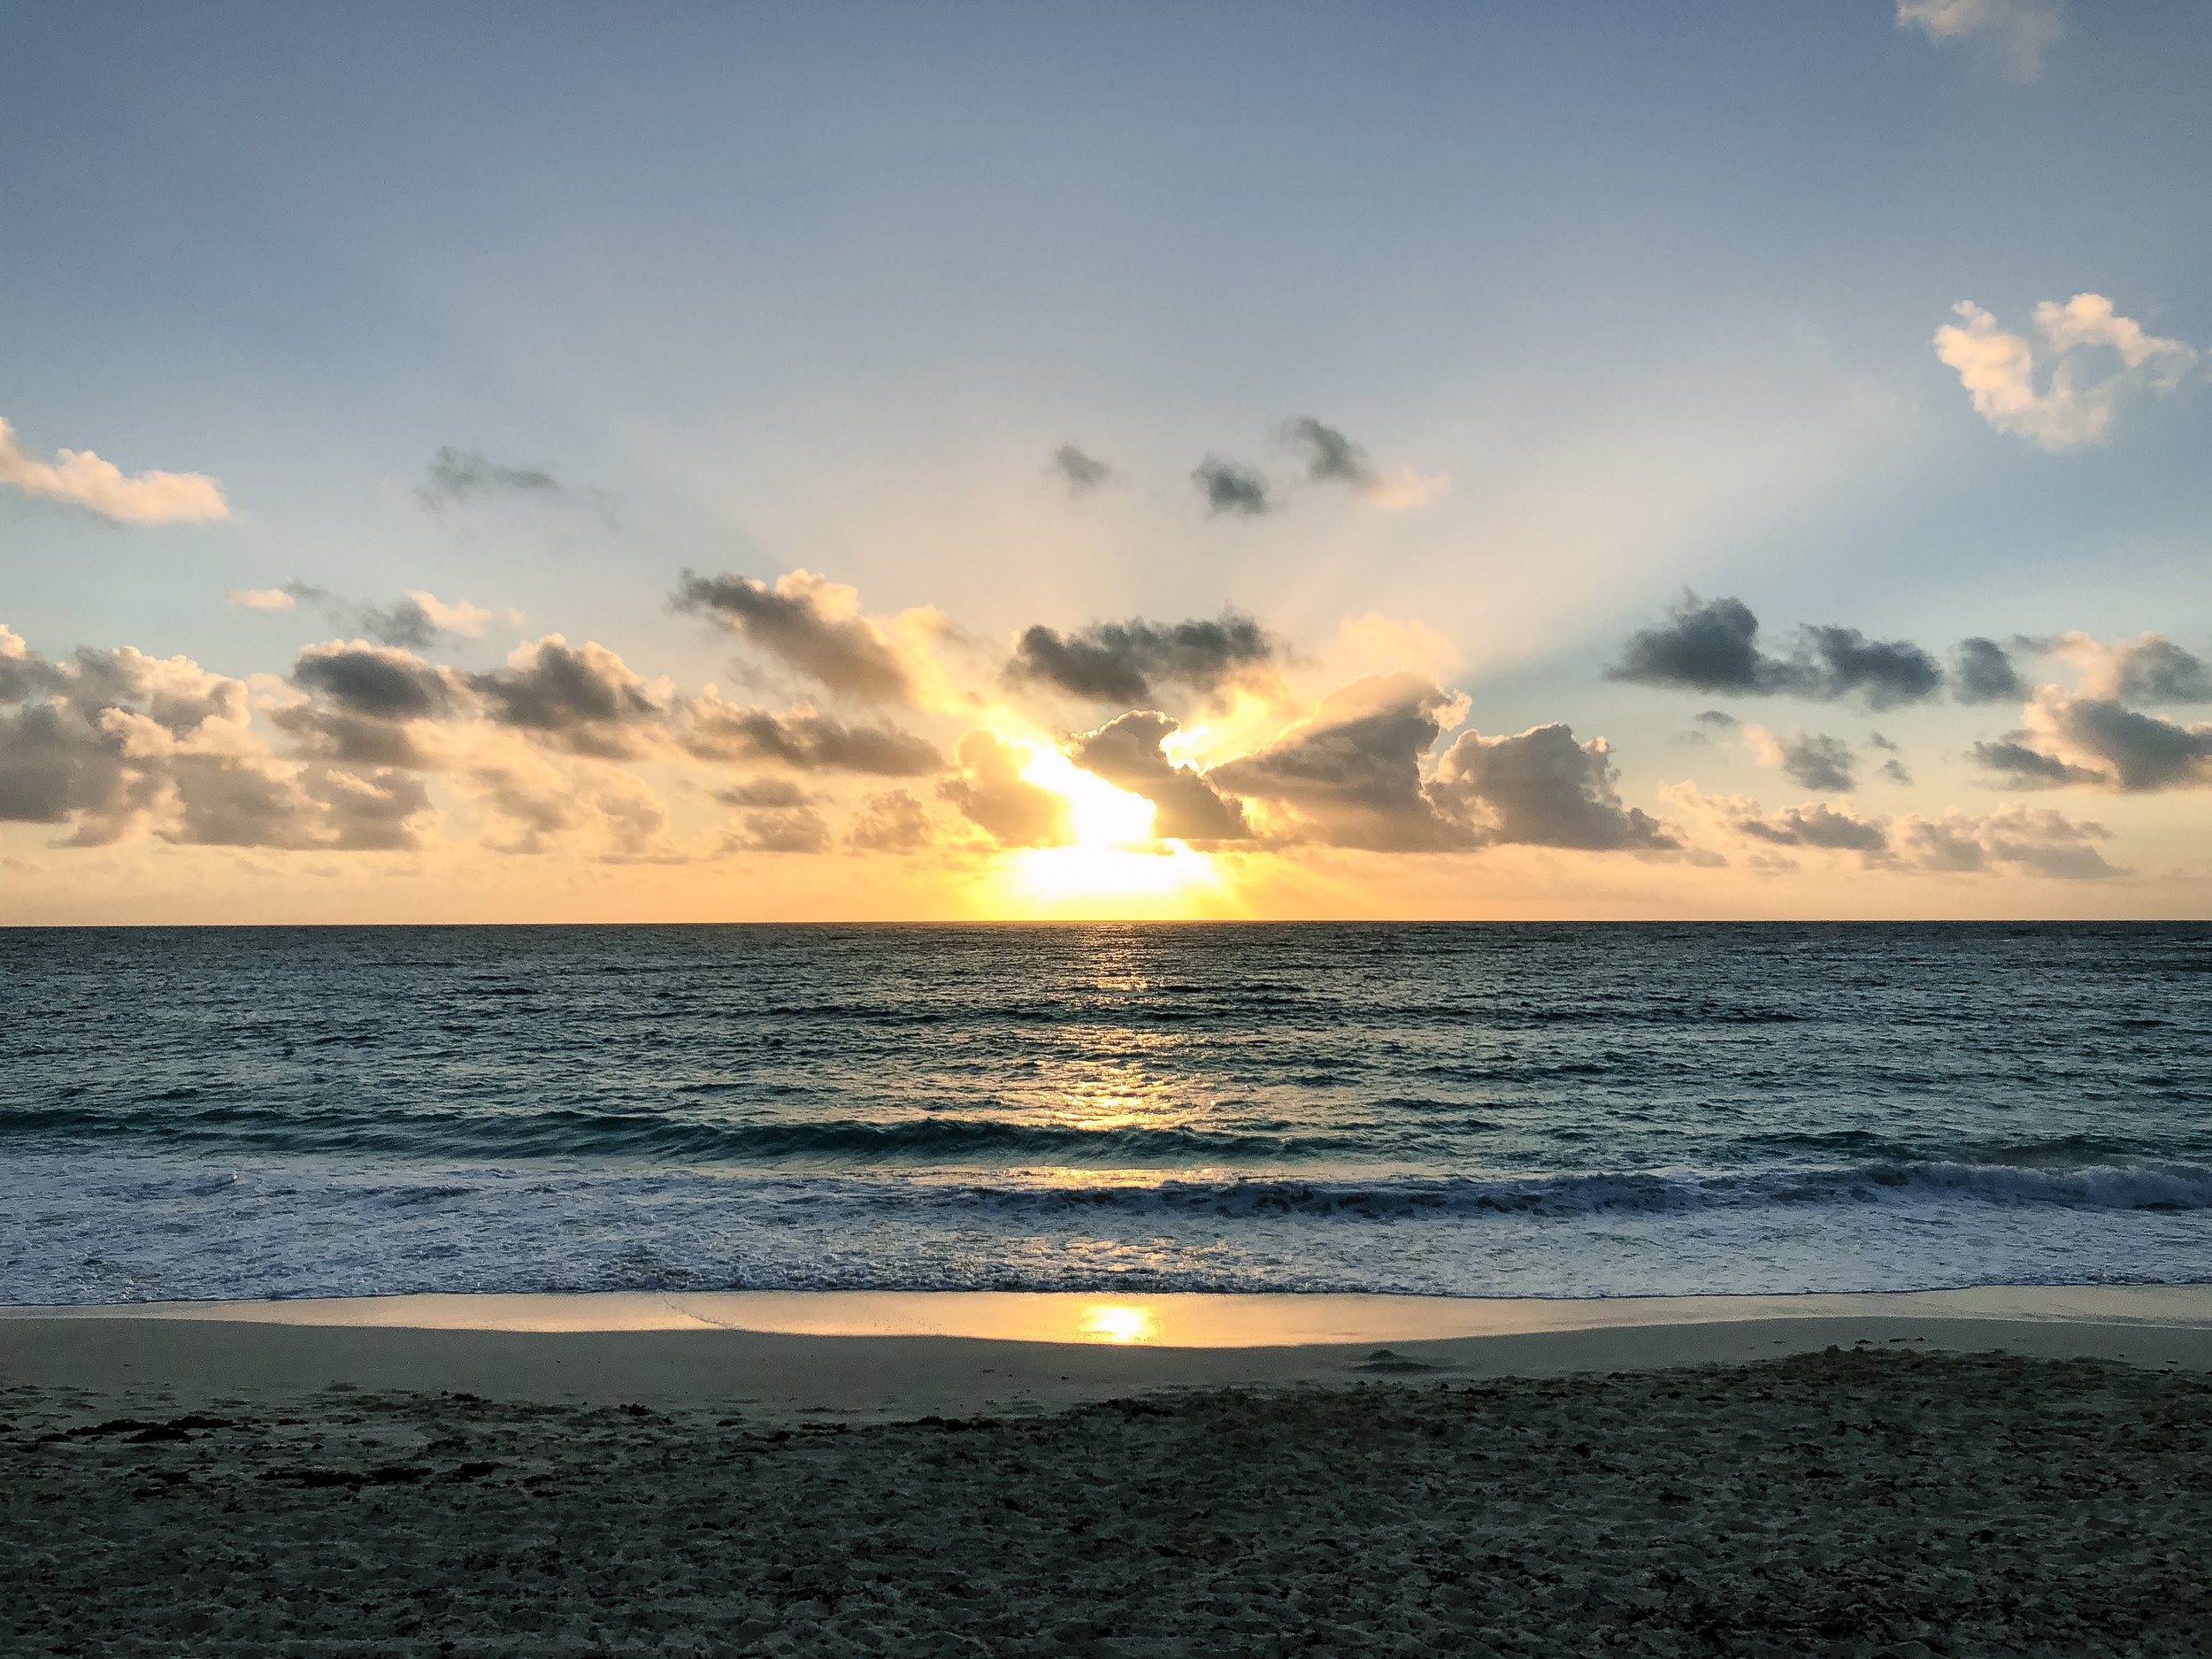 Sunrise in Tulum, Mexico.jpg